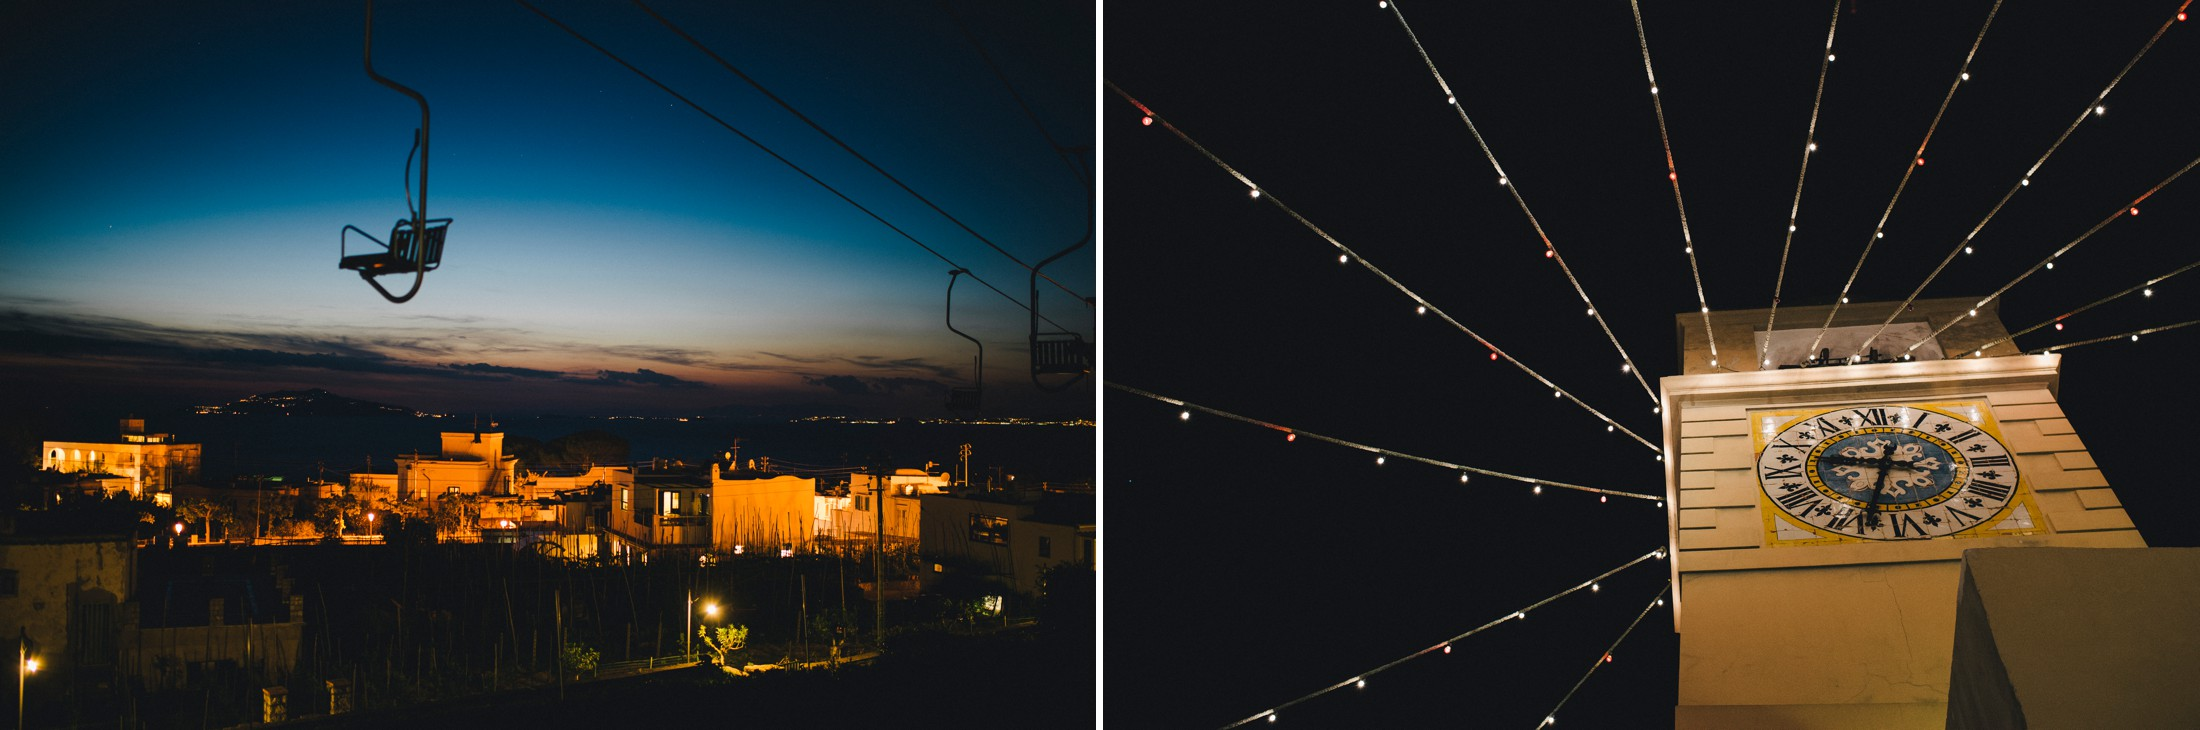 collage details from capri island by night